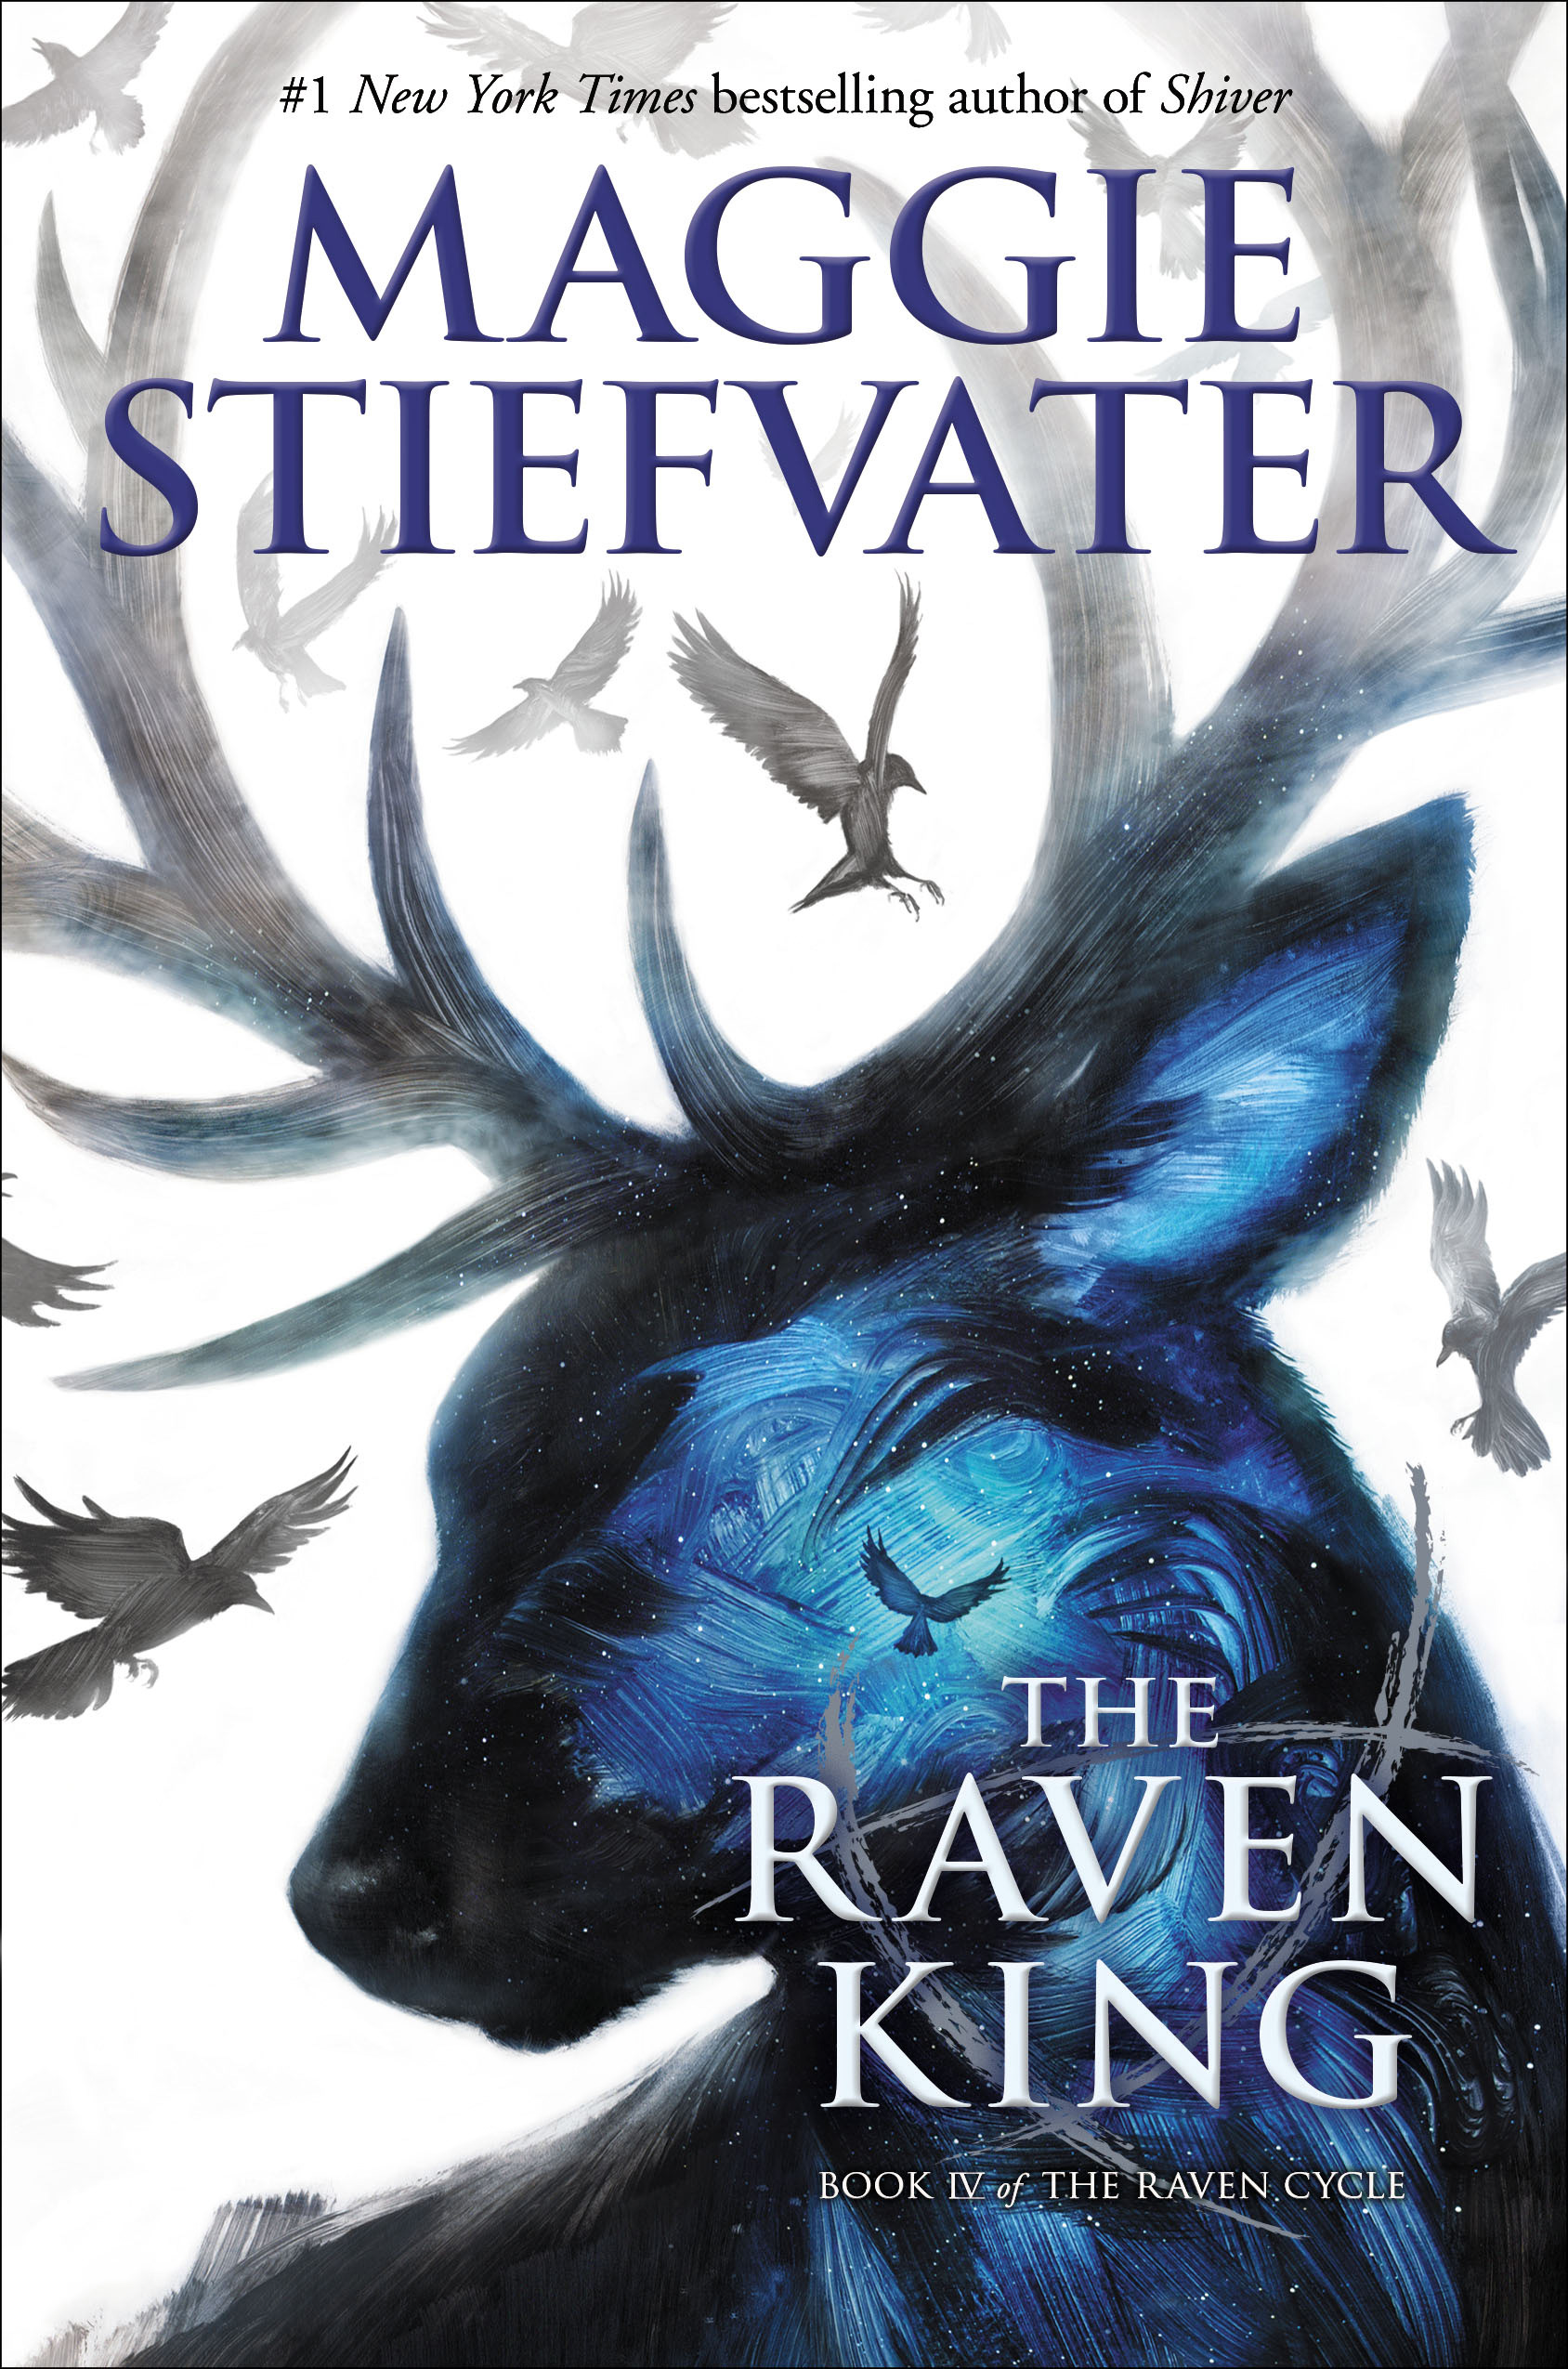 Image result for the raven king cover